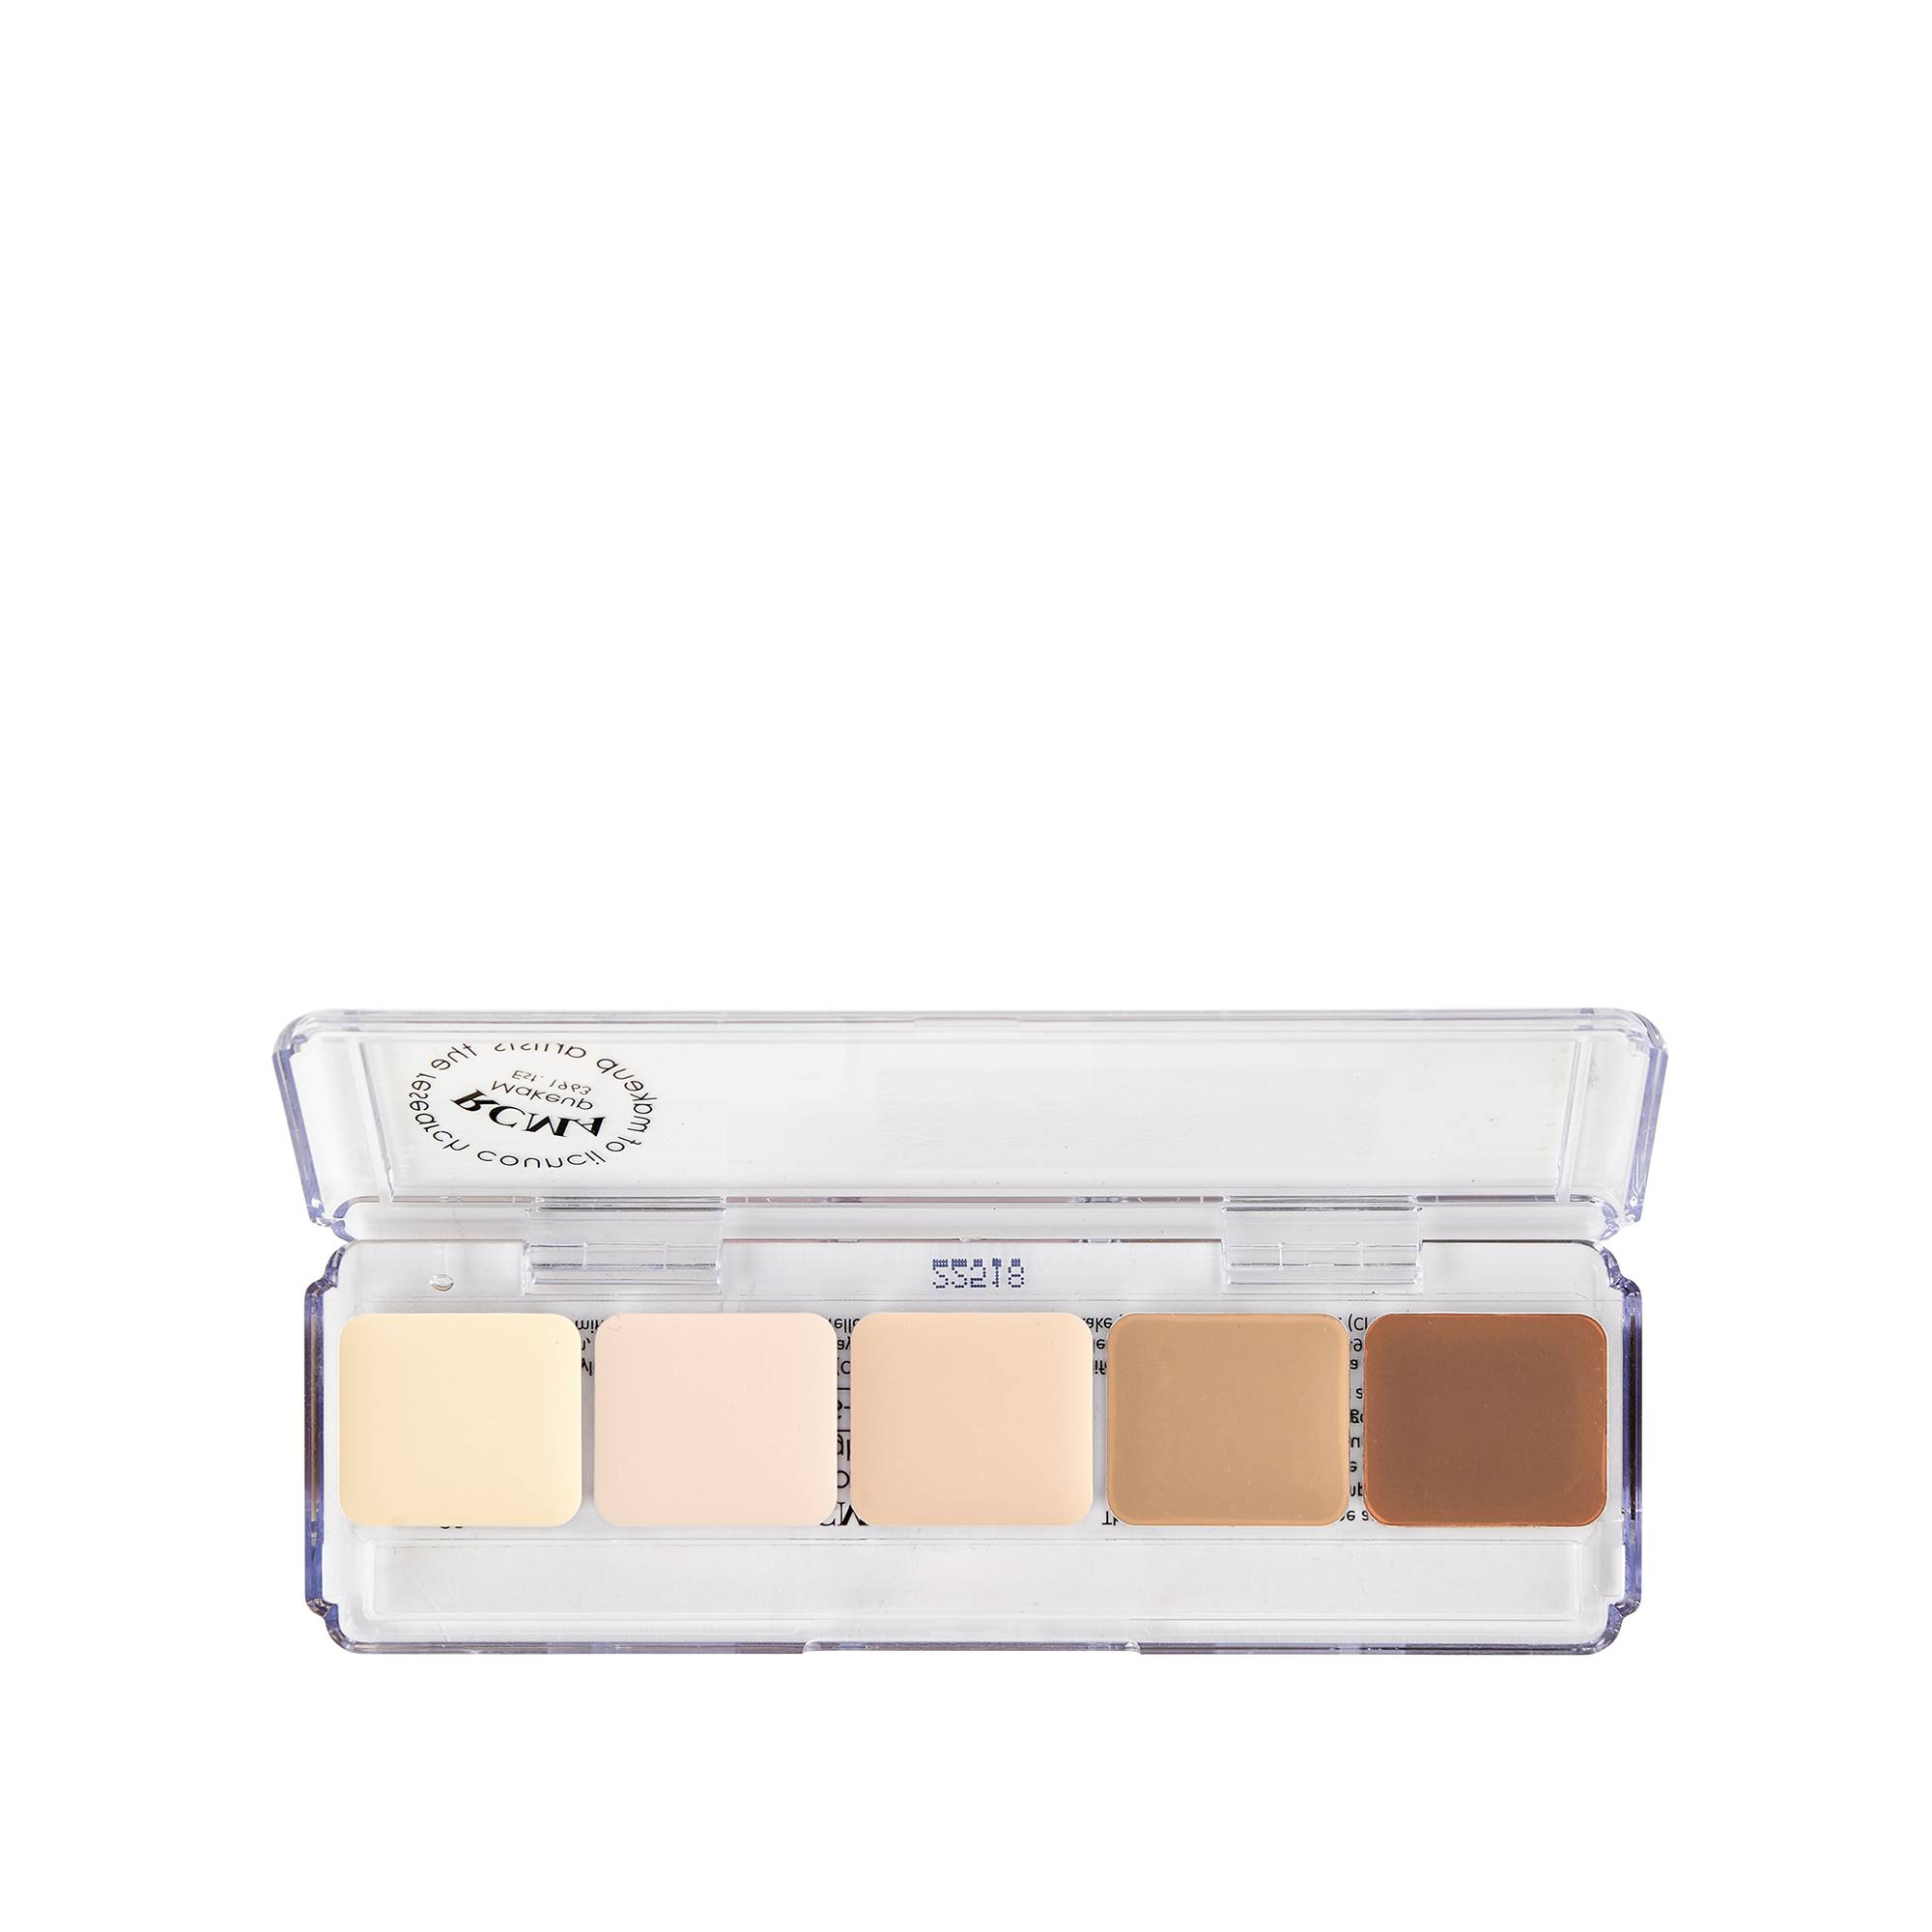 RCMA Series Favourites 5 Part Palette Highlight and Contour